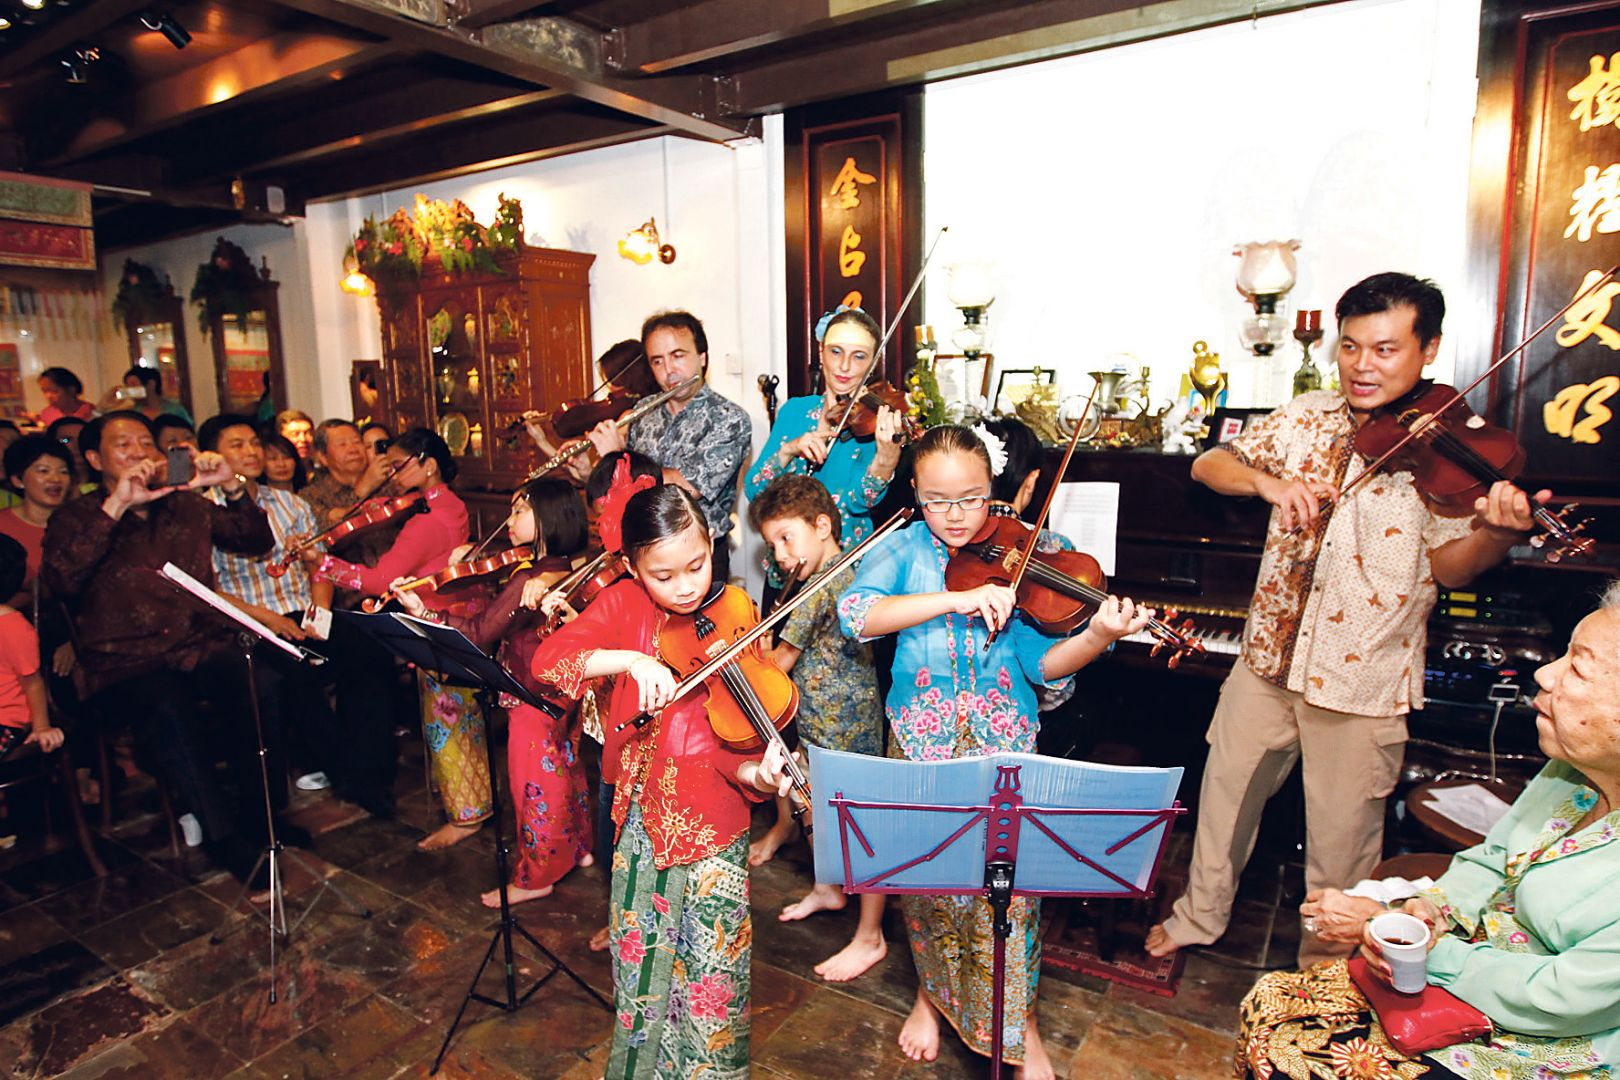 A night of Peranakan music